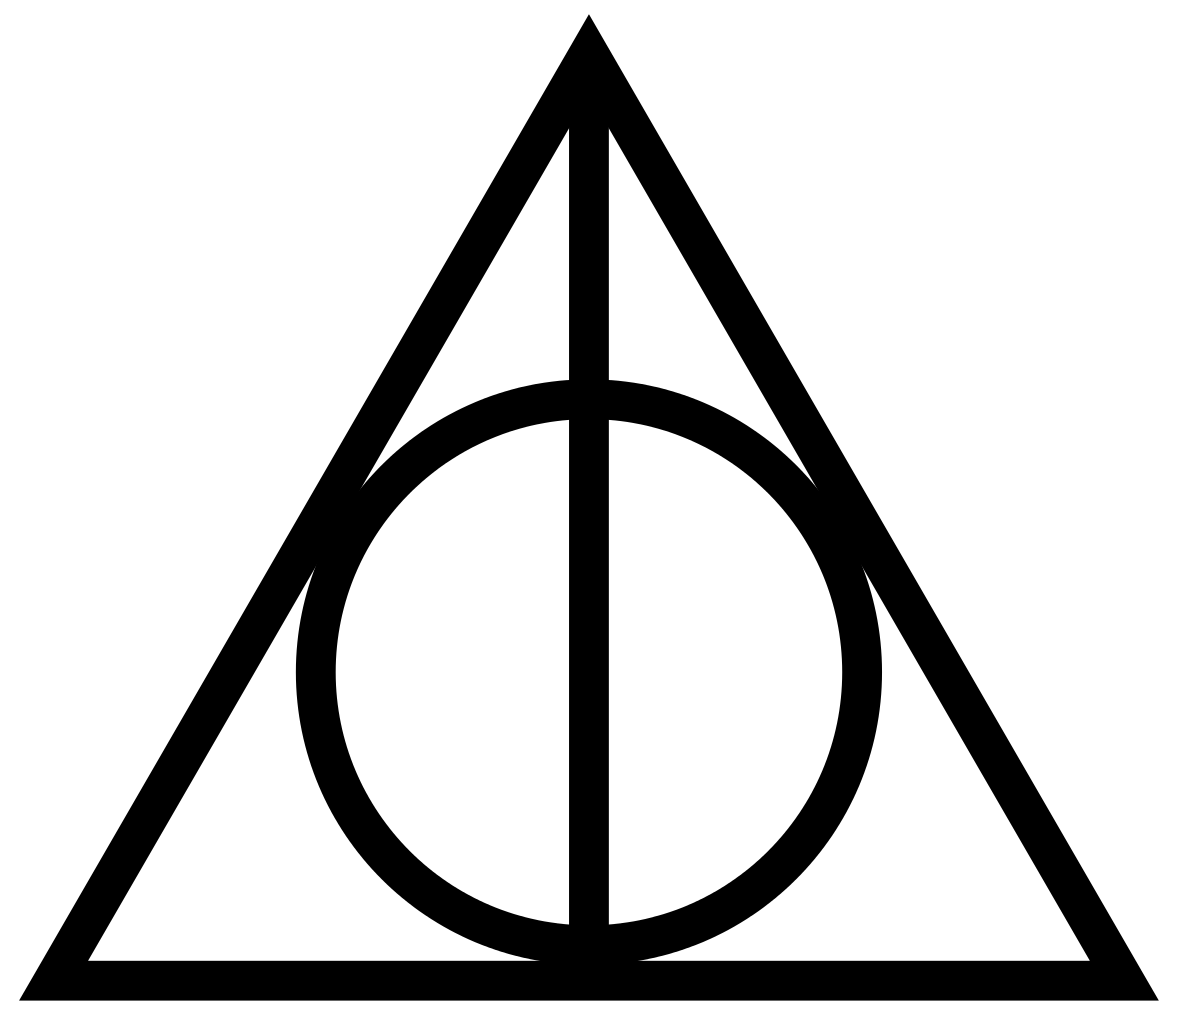 1179px-Deathly_Hallows_Sign.svg.png (1179×1024) | Reliques ...